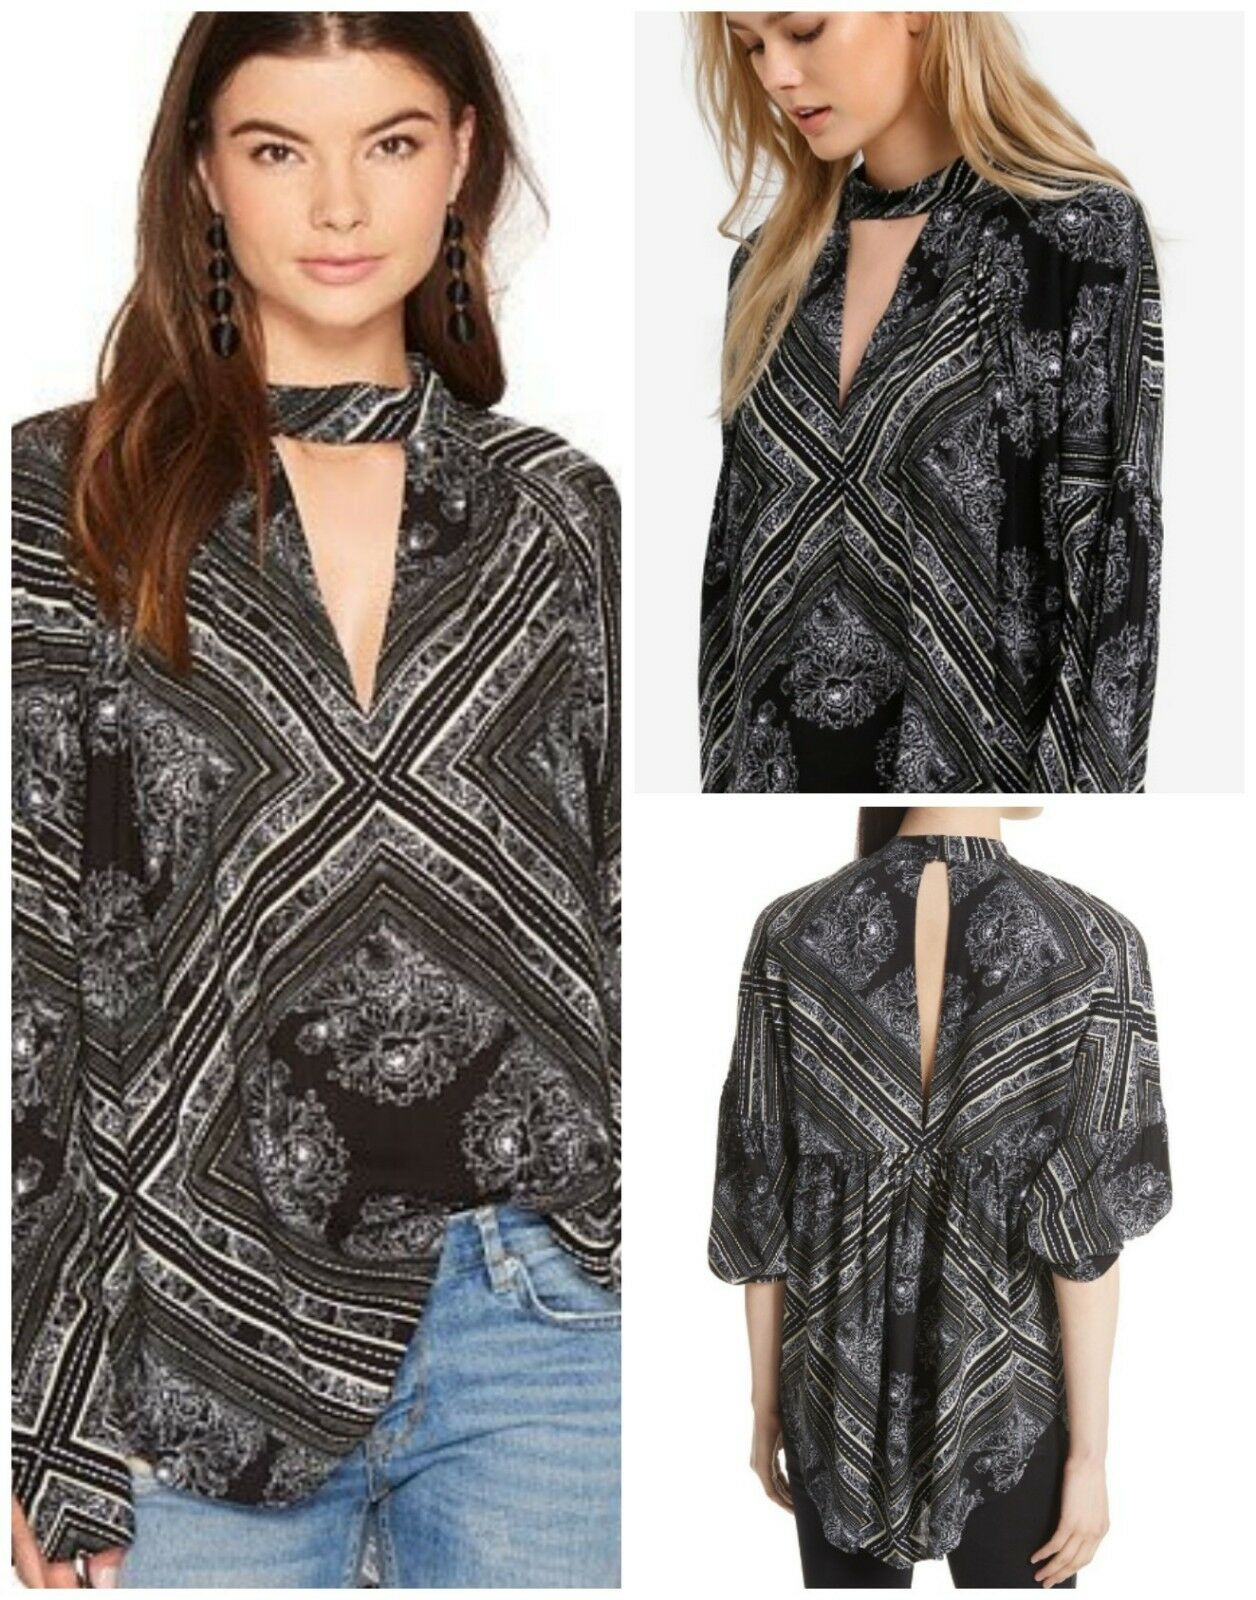 NWT Free People Walking on a Dream XS Tunic Bohemian Top Keyhole Peasant Blouse